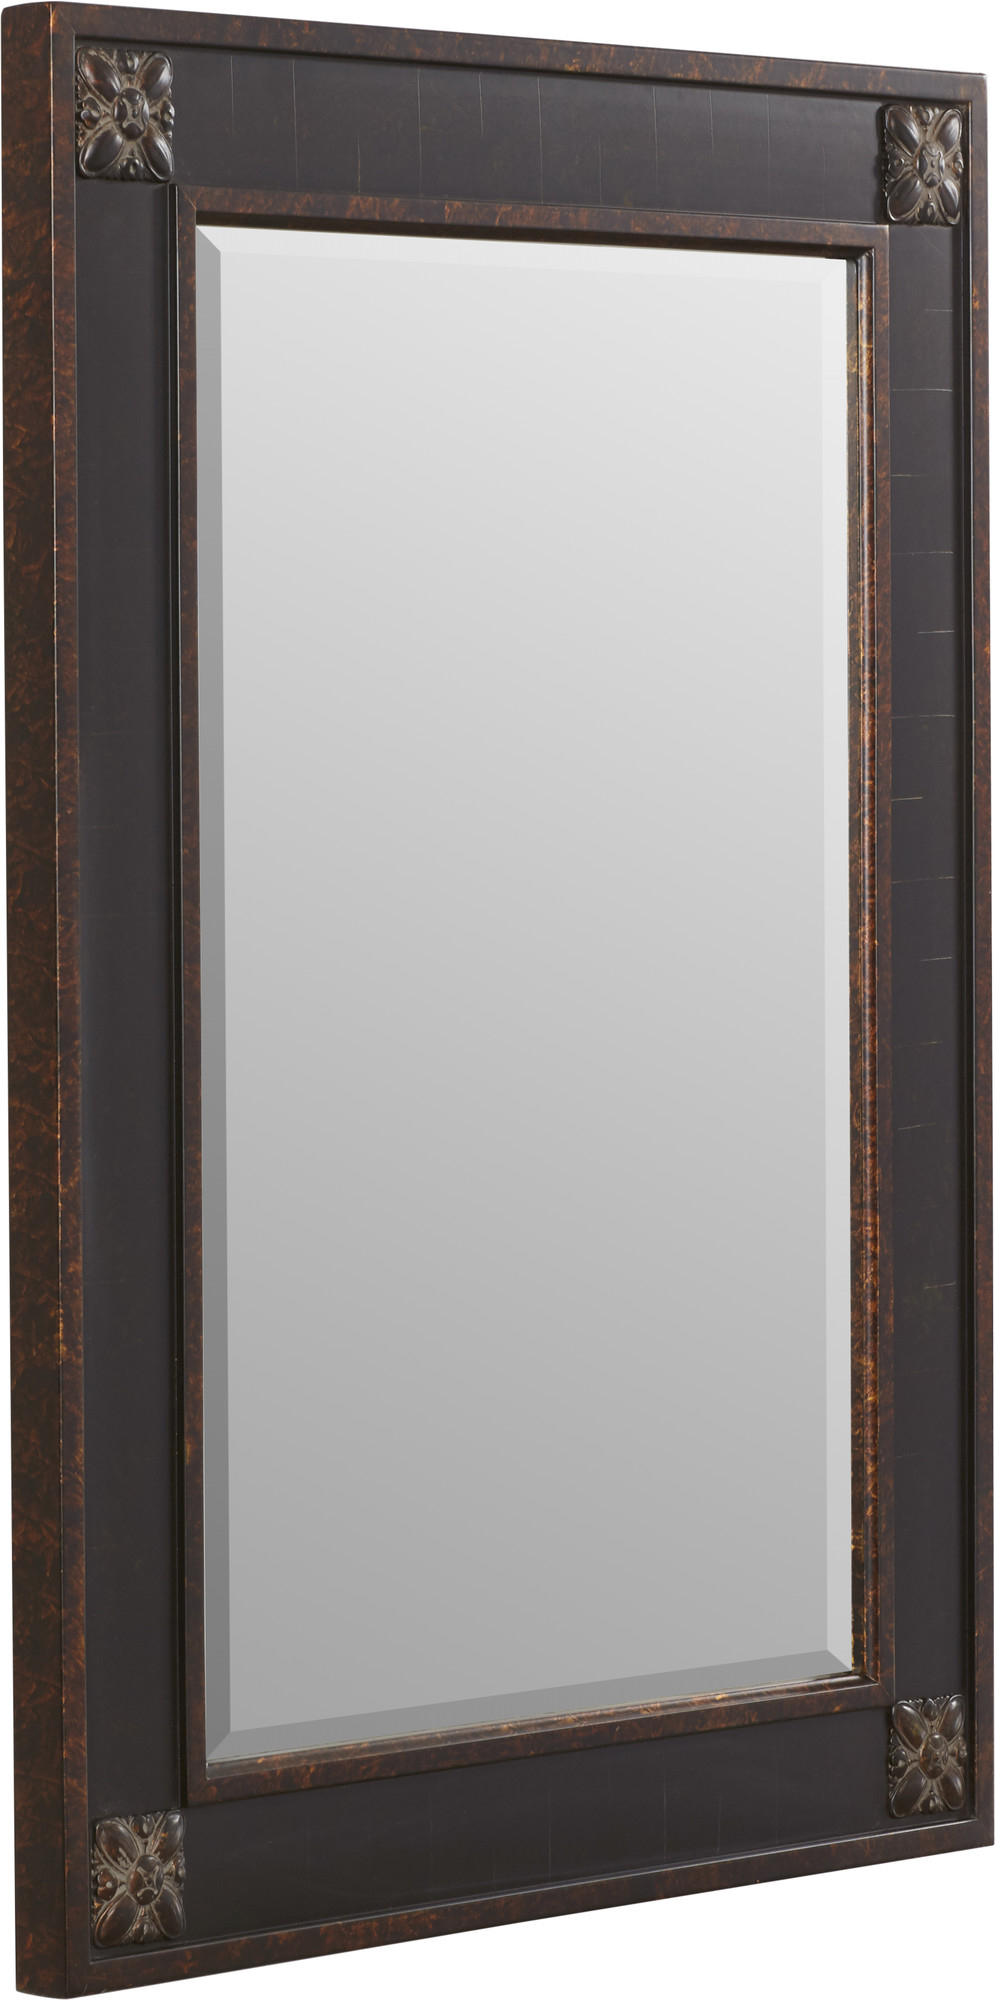 Details About Fleur De Lis Living Kristy Rectangular Beveled Vanity Mirror  In Distressed With Kristy Rectangular Beveled Vanity Mirrors In Distressed (Image 8 of 20)